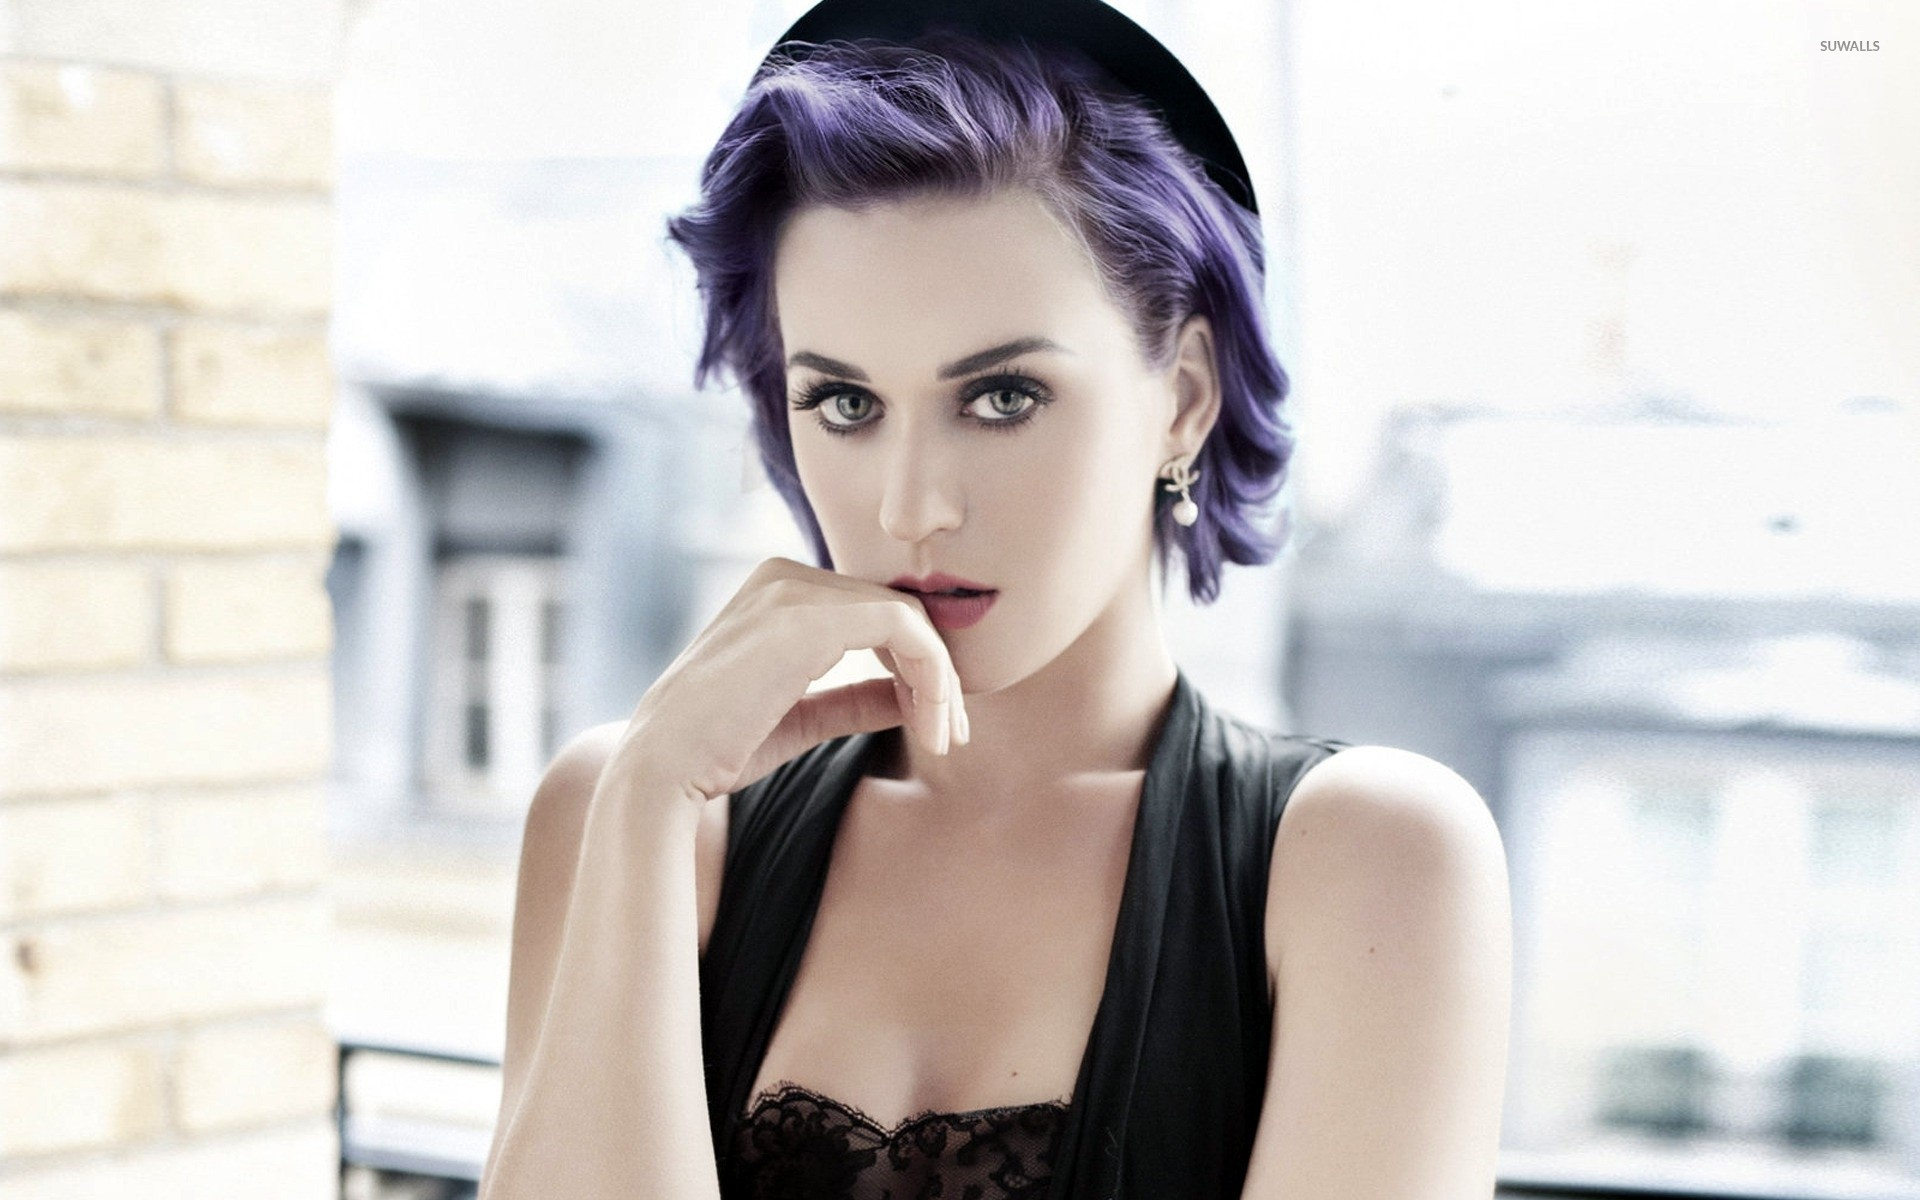 Katy Perry 26 Wallpaper